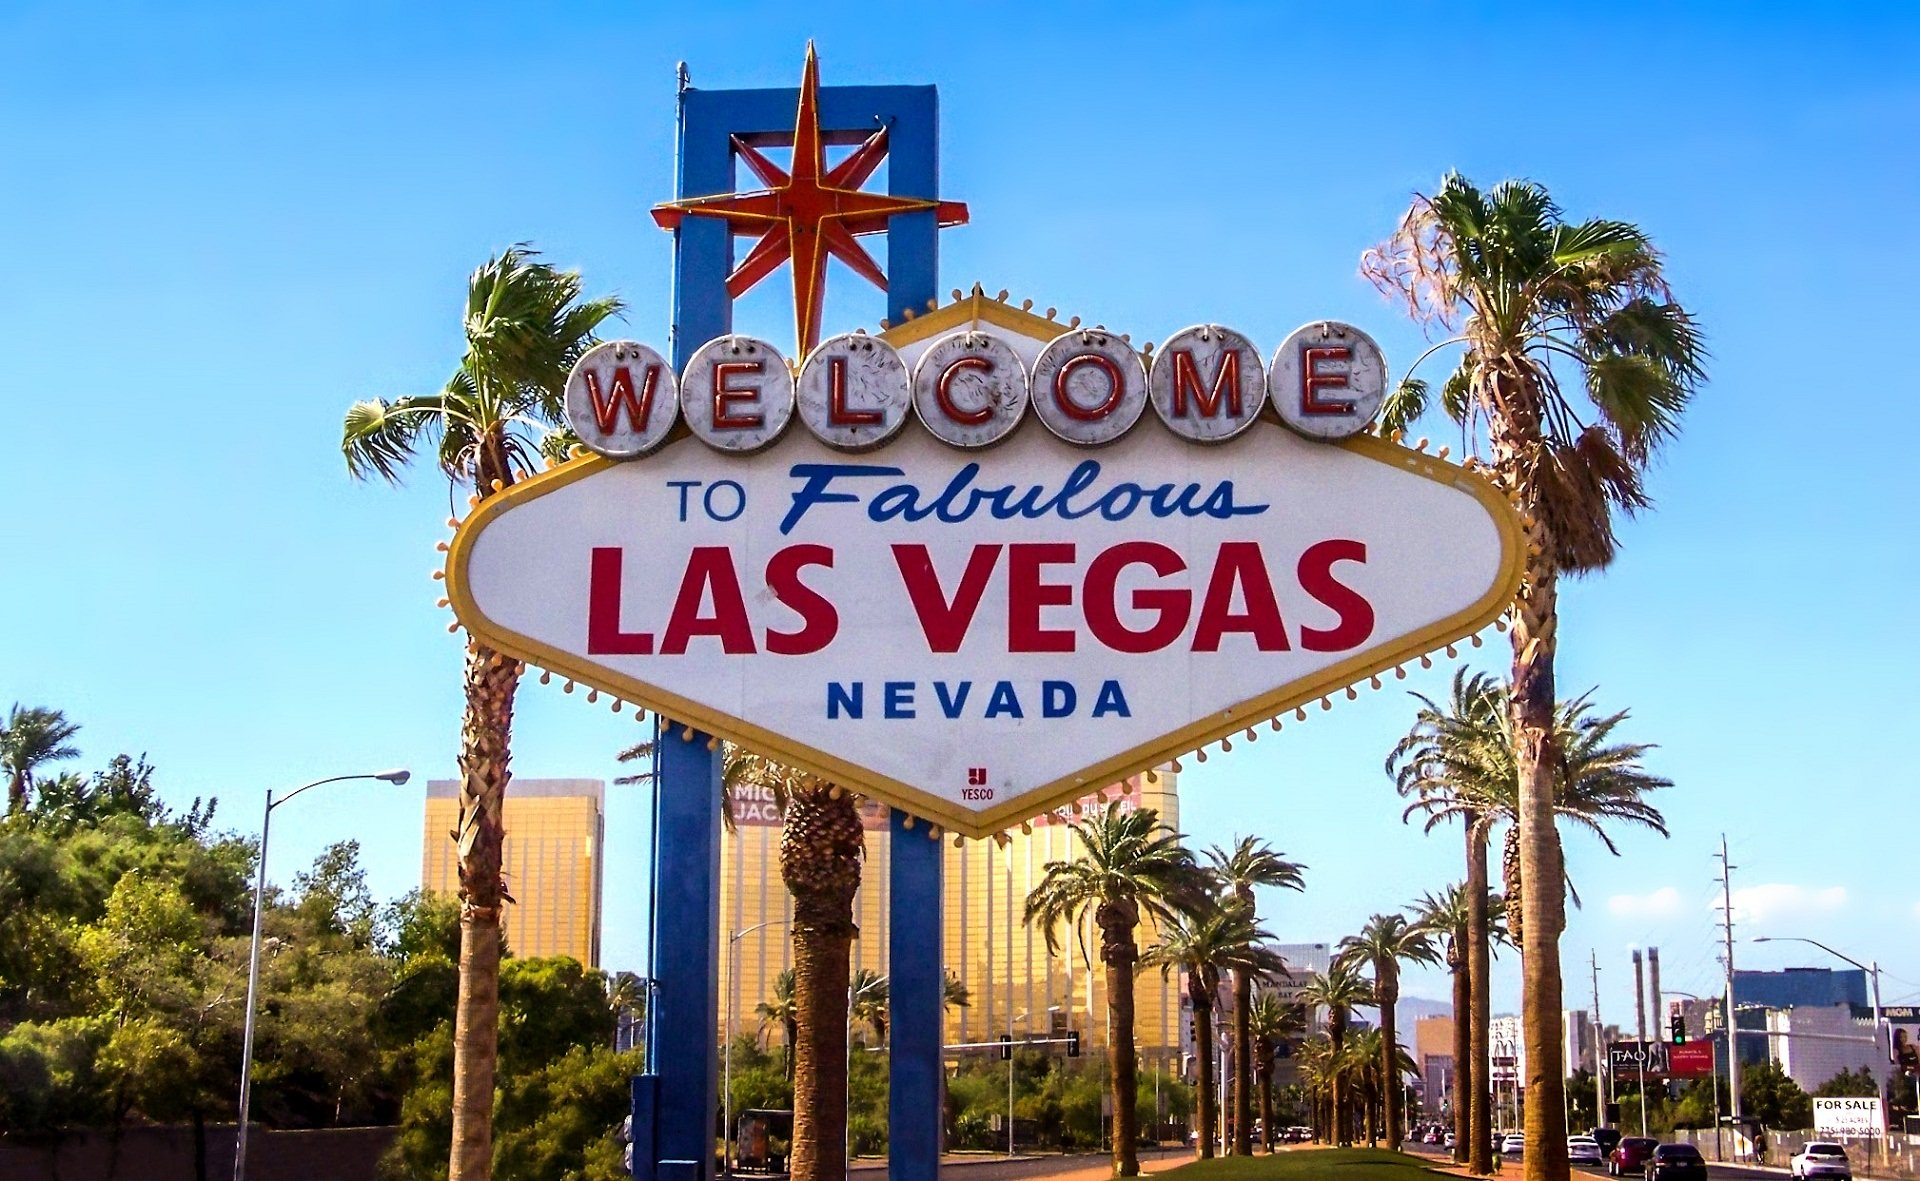 Las Vegas Public Speaking Opportunities